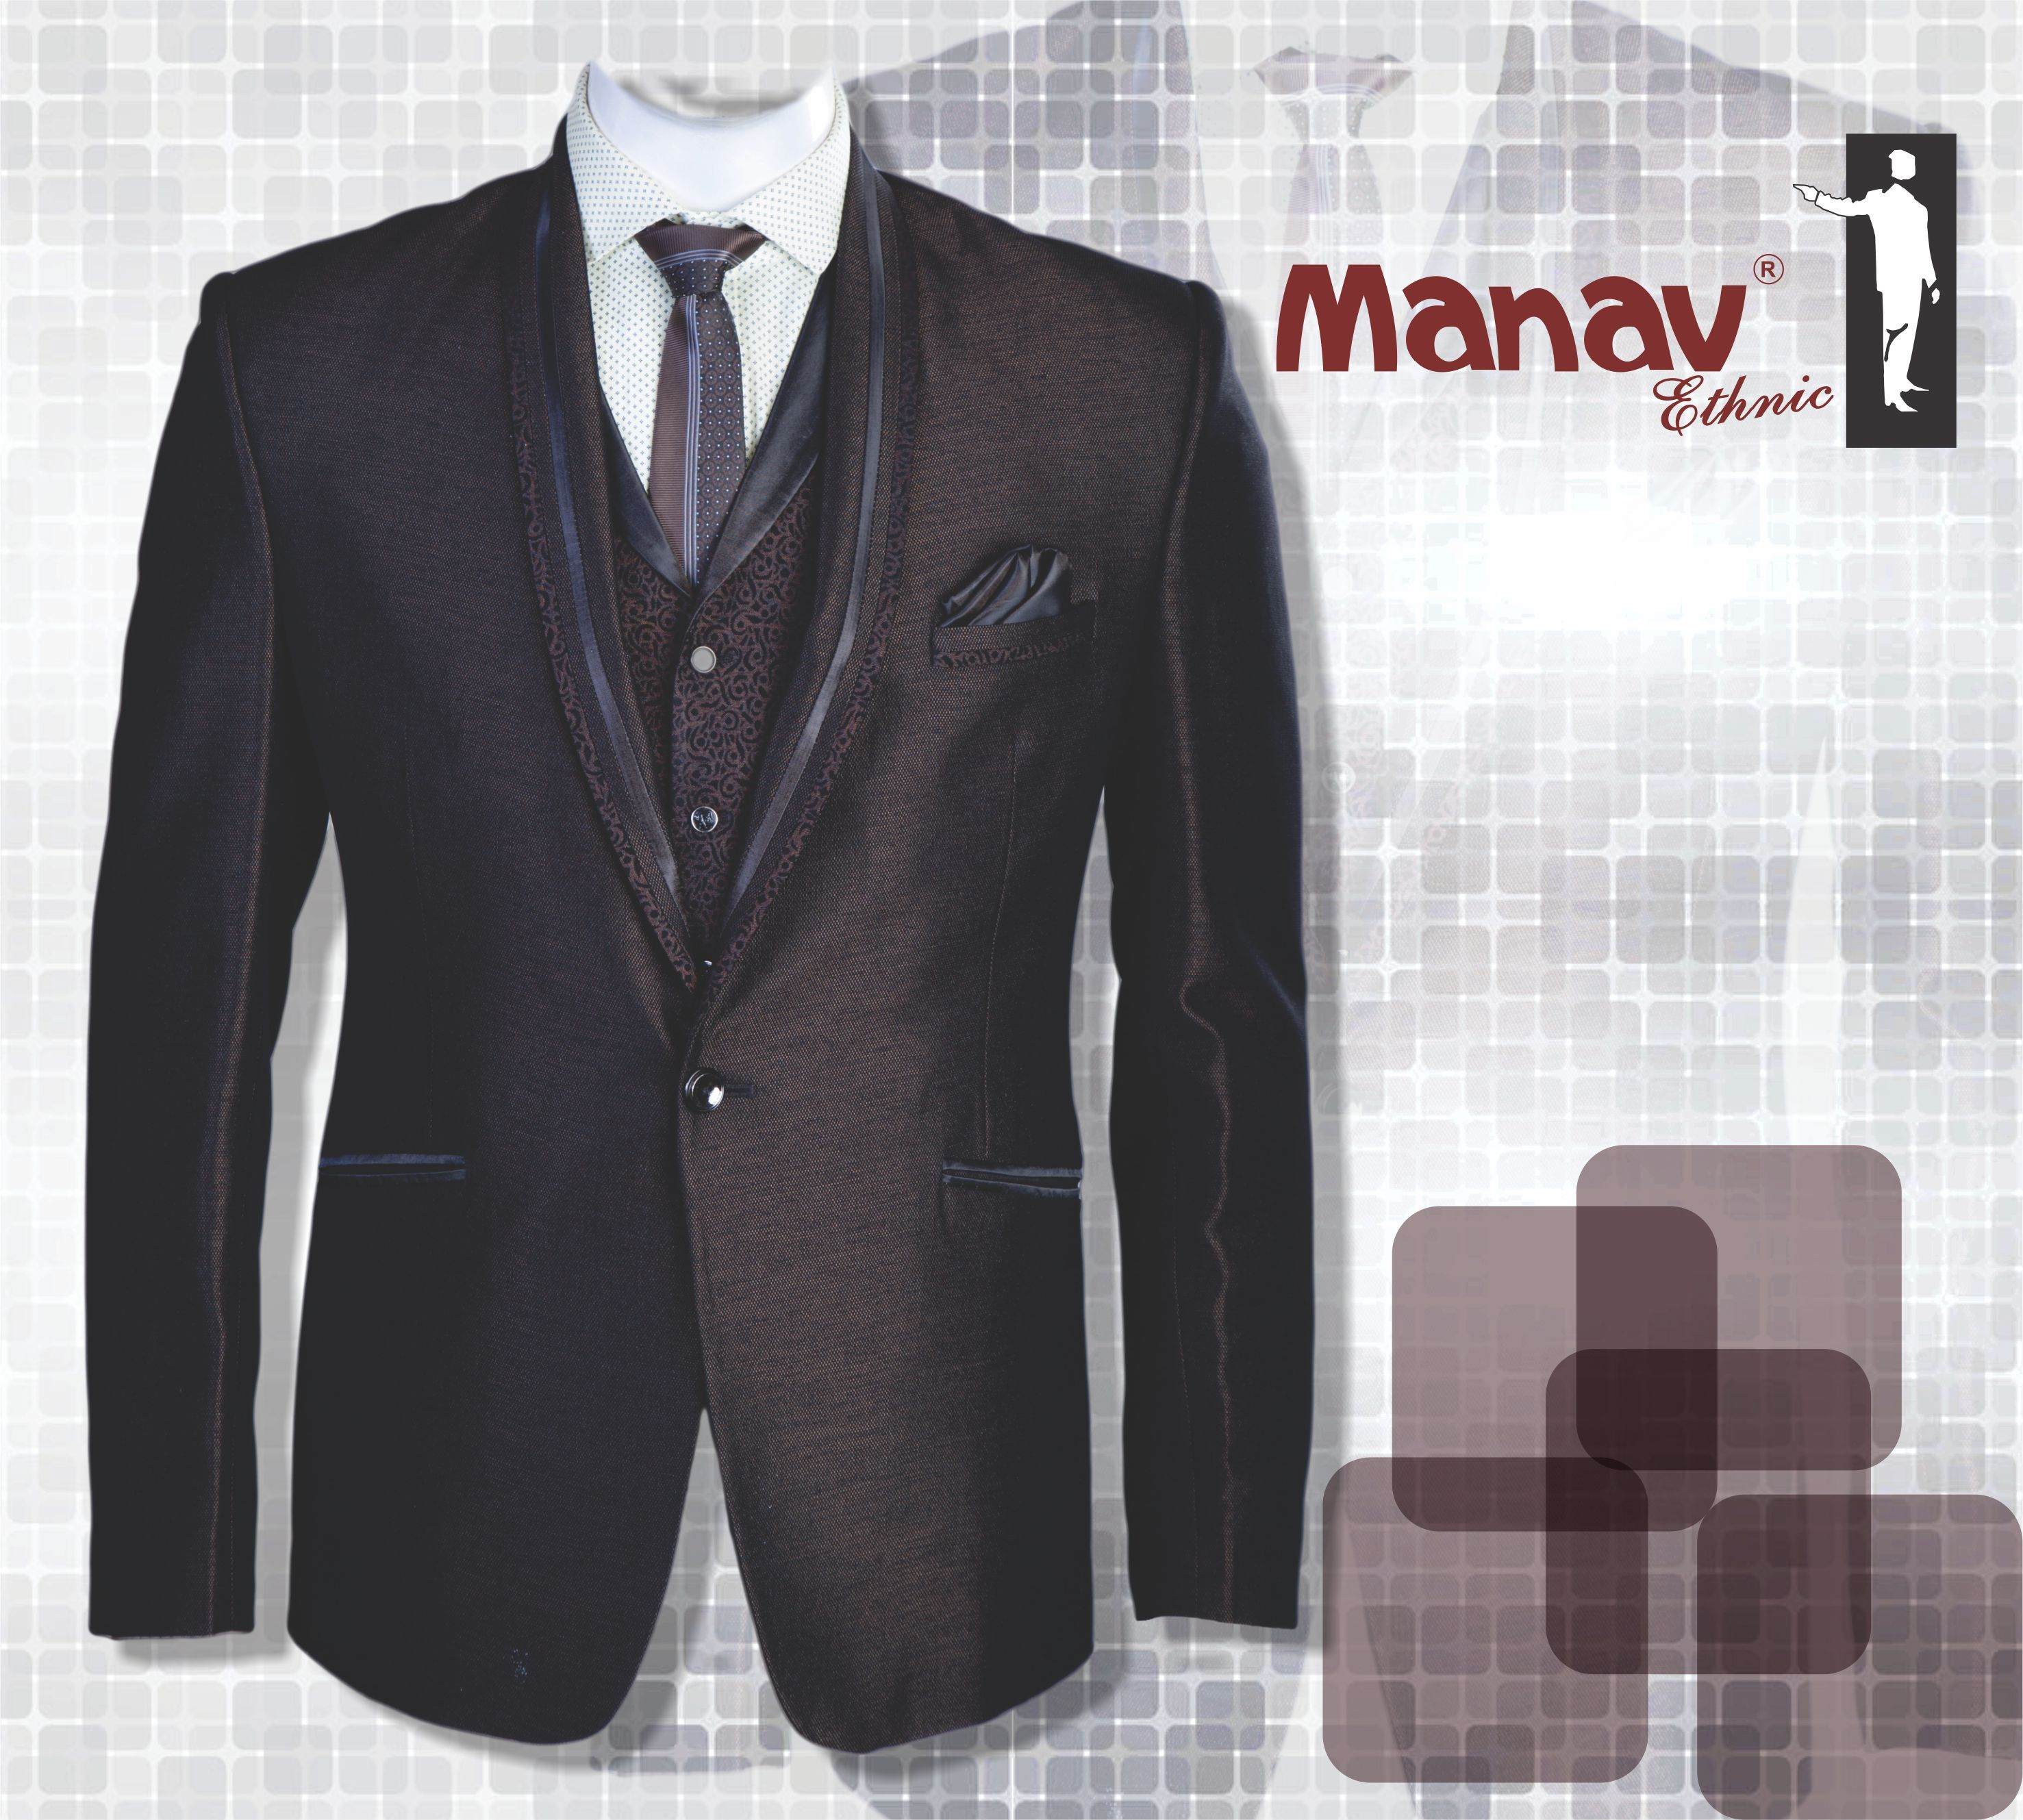 Made with the best Italian Fabric, this 5 piece Tuxedo Suit will leave you flattered. www.manavethnic.com